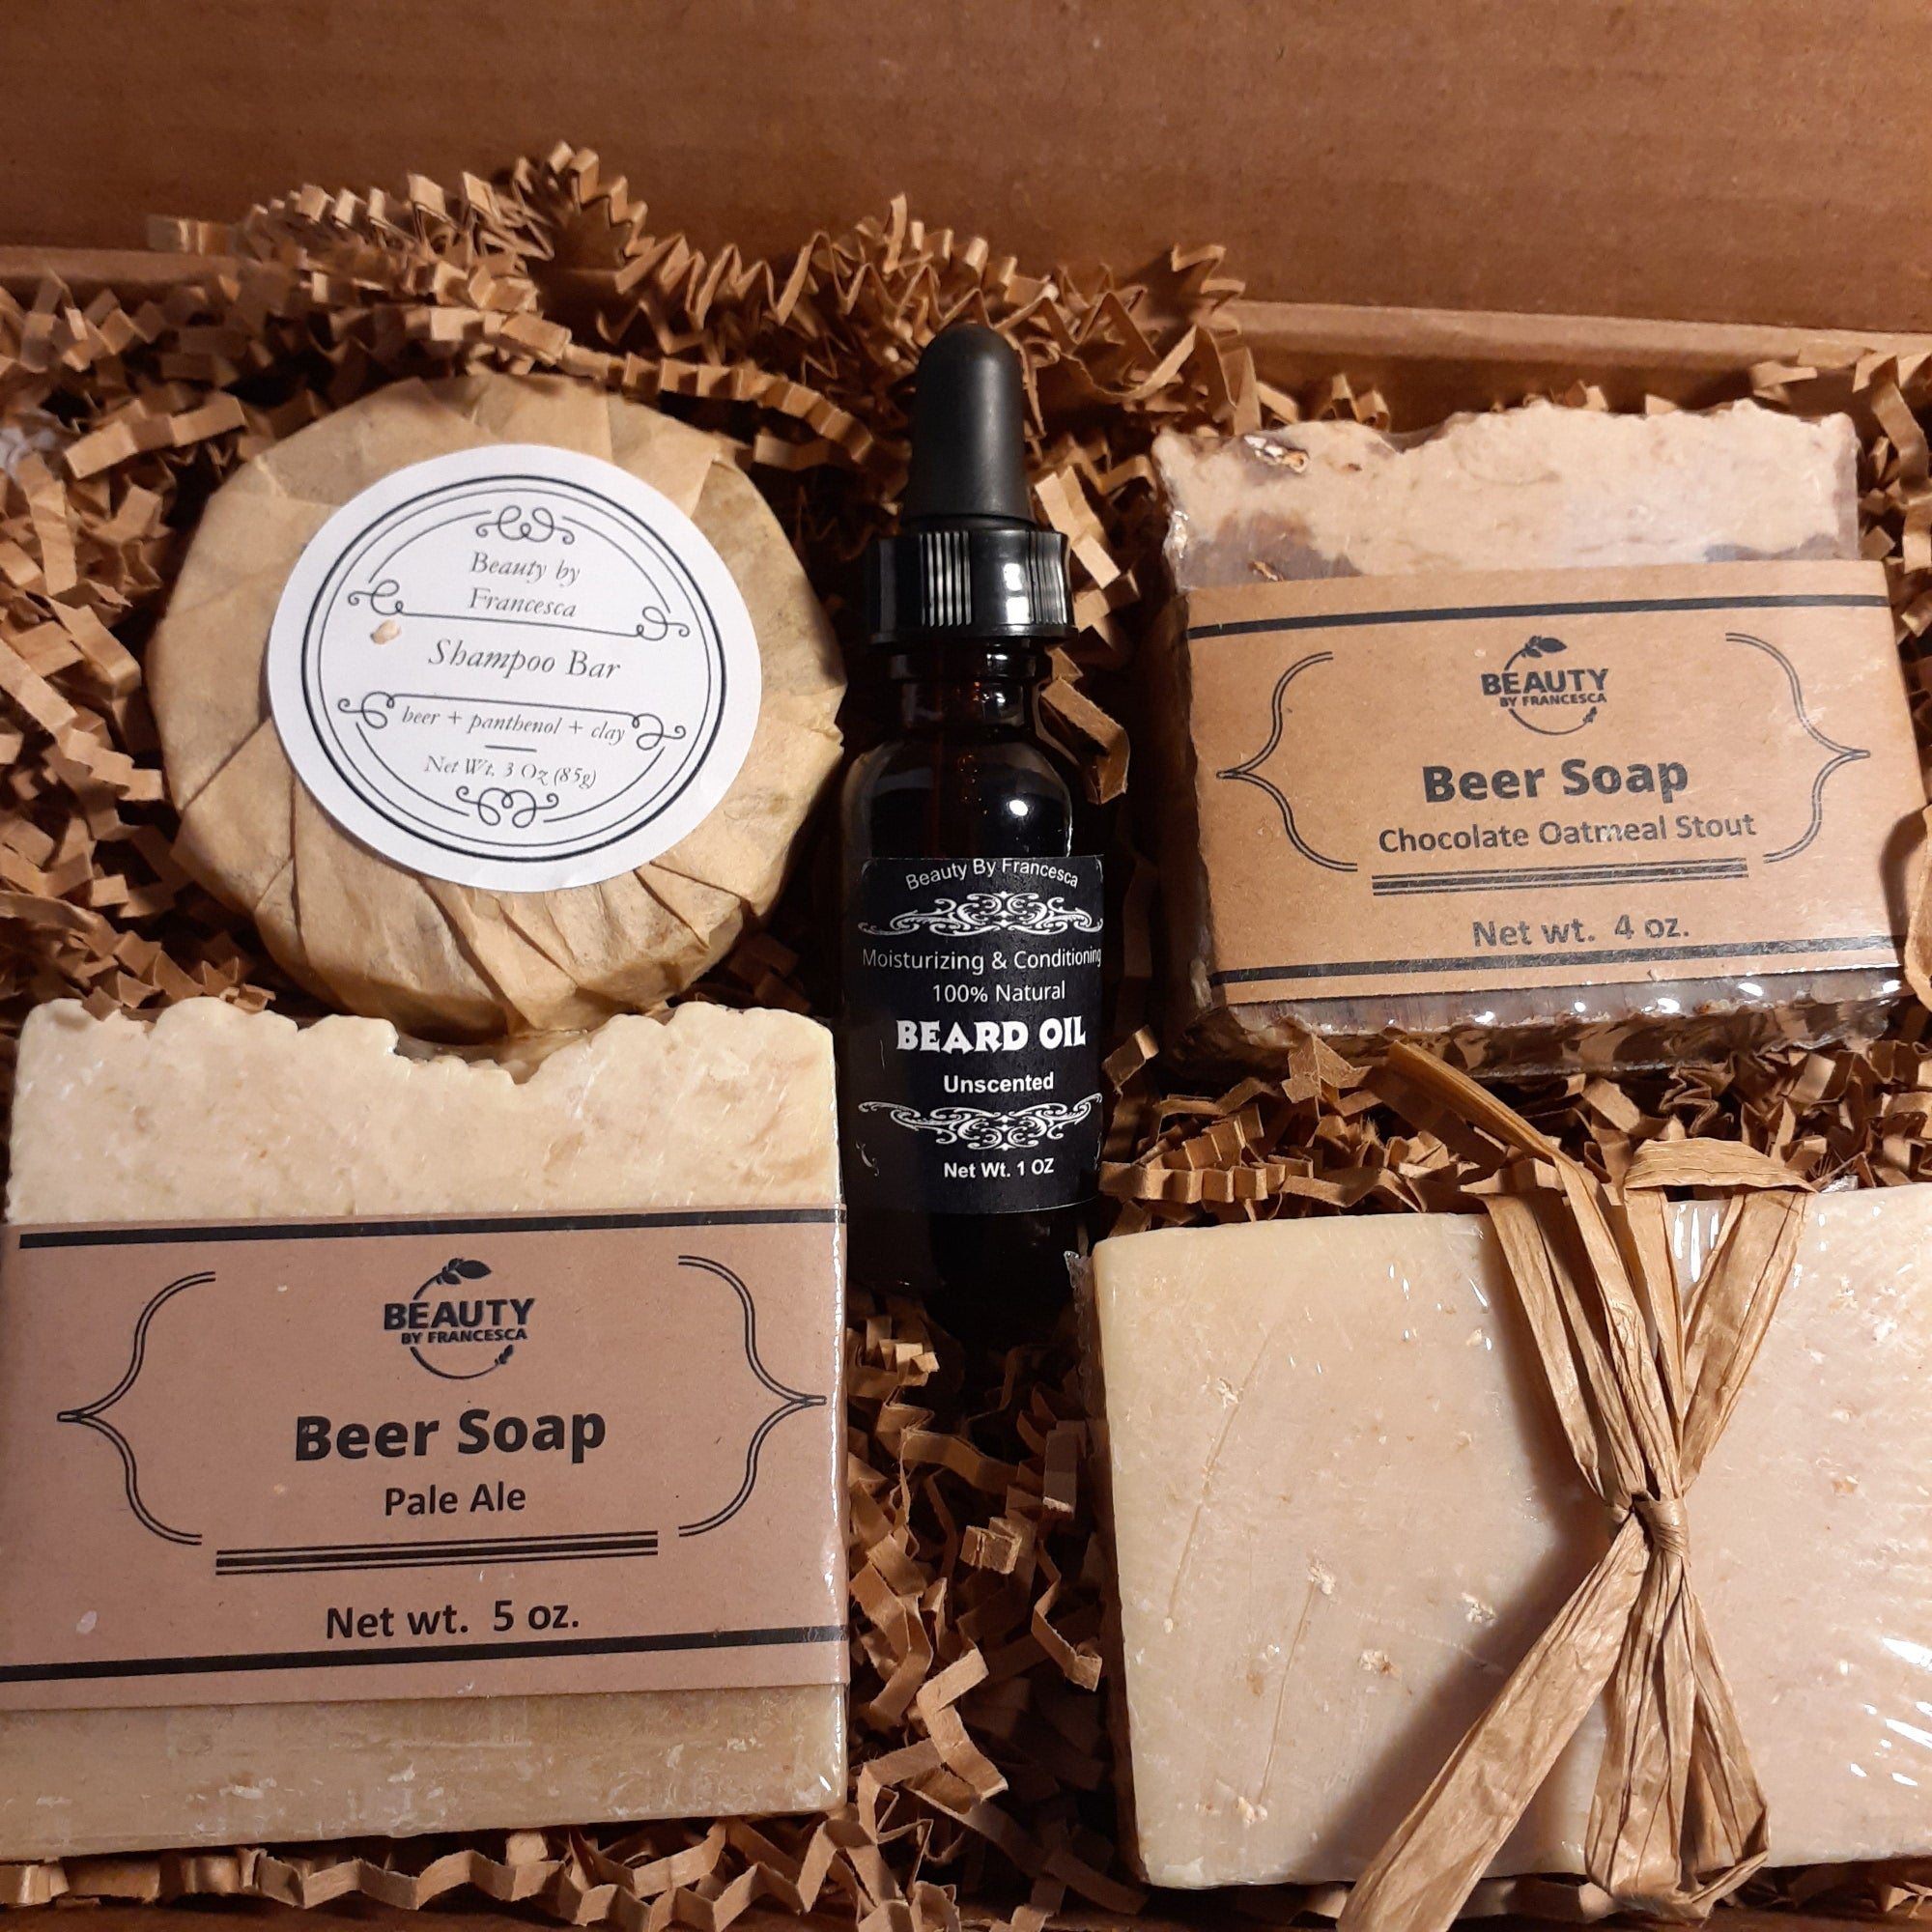 beer soap with beard oil gift set